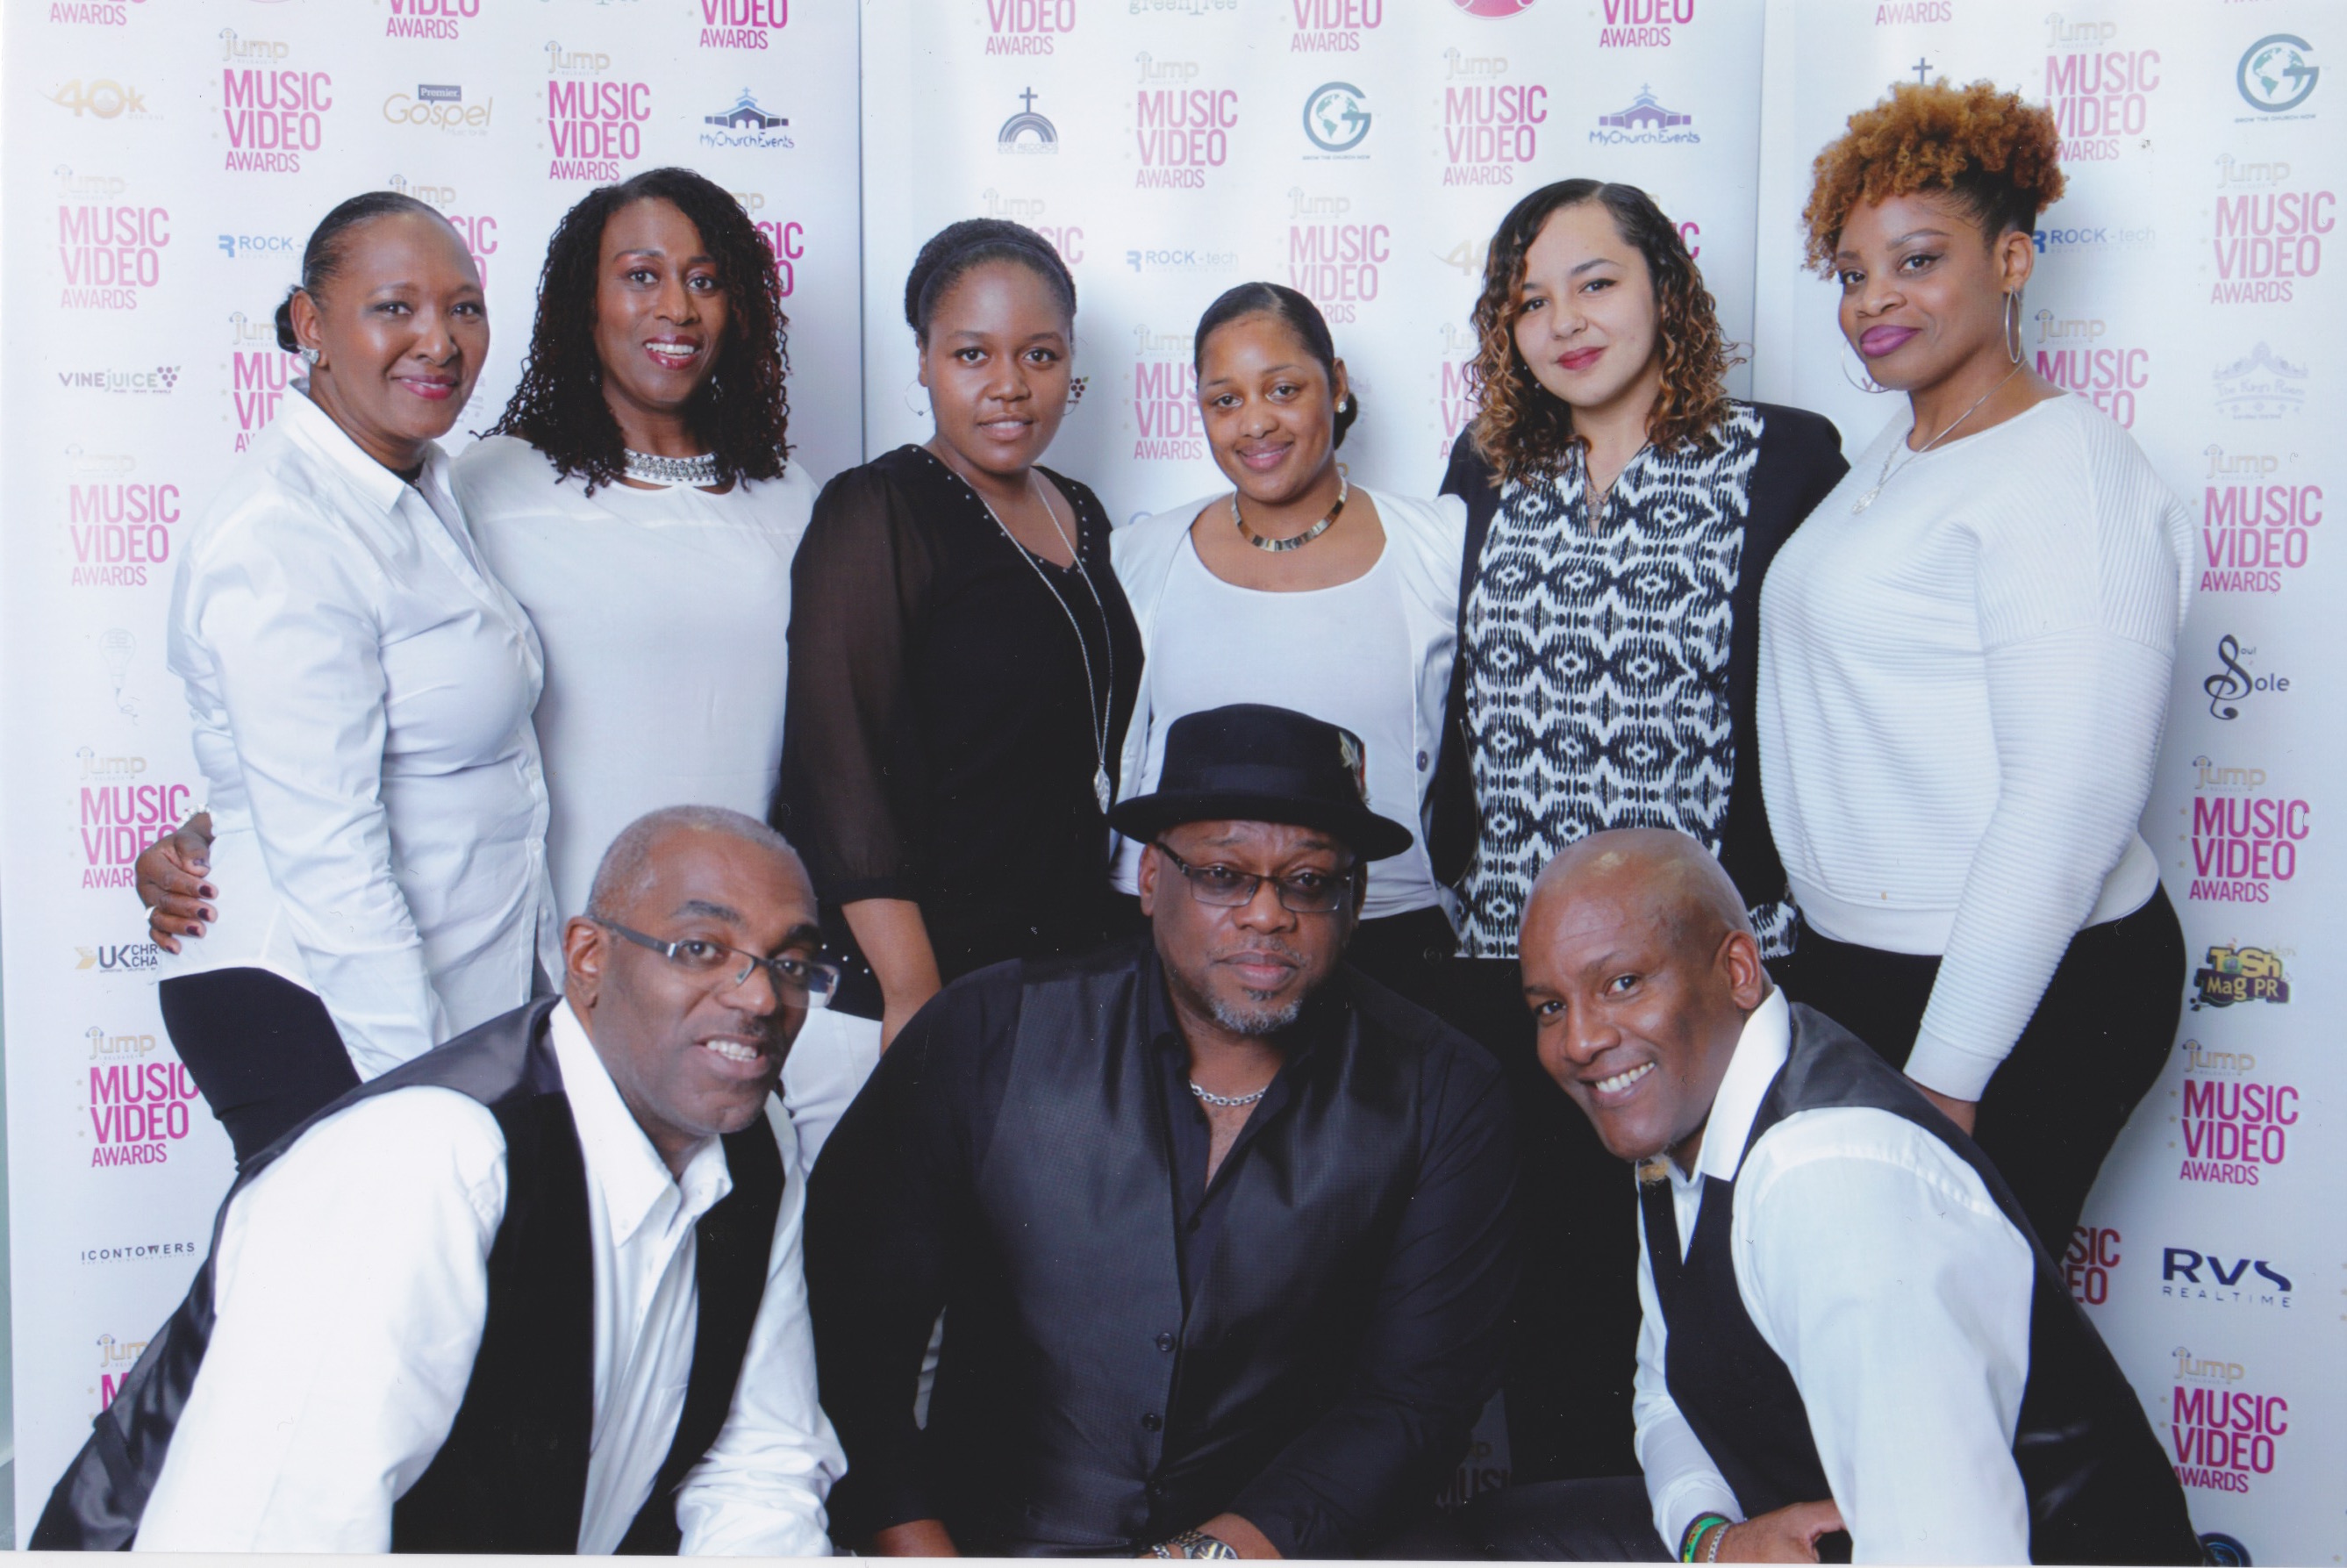 IDMC Soul & Gospel Choir, John Fisher IDMC Founder/Choir Director (credit: JoFishMusic)